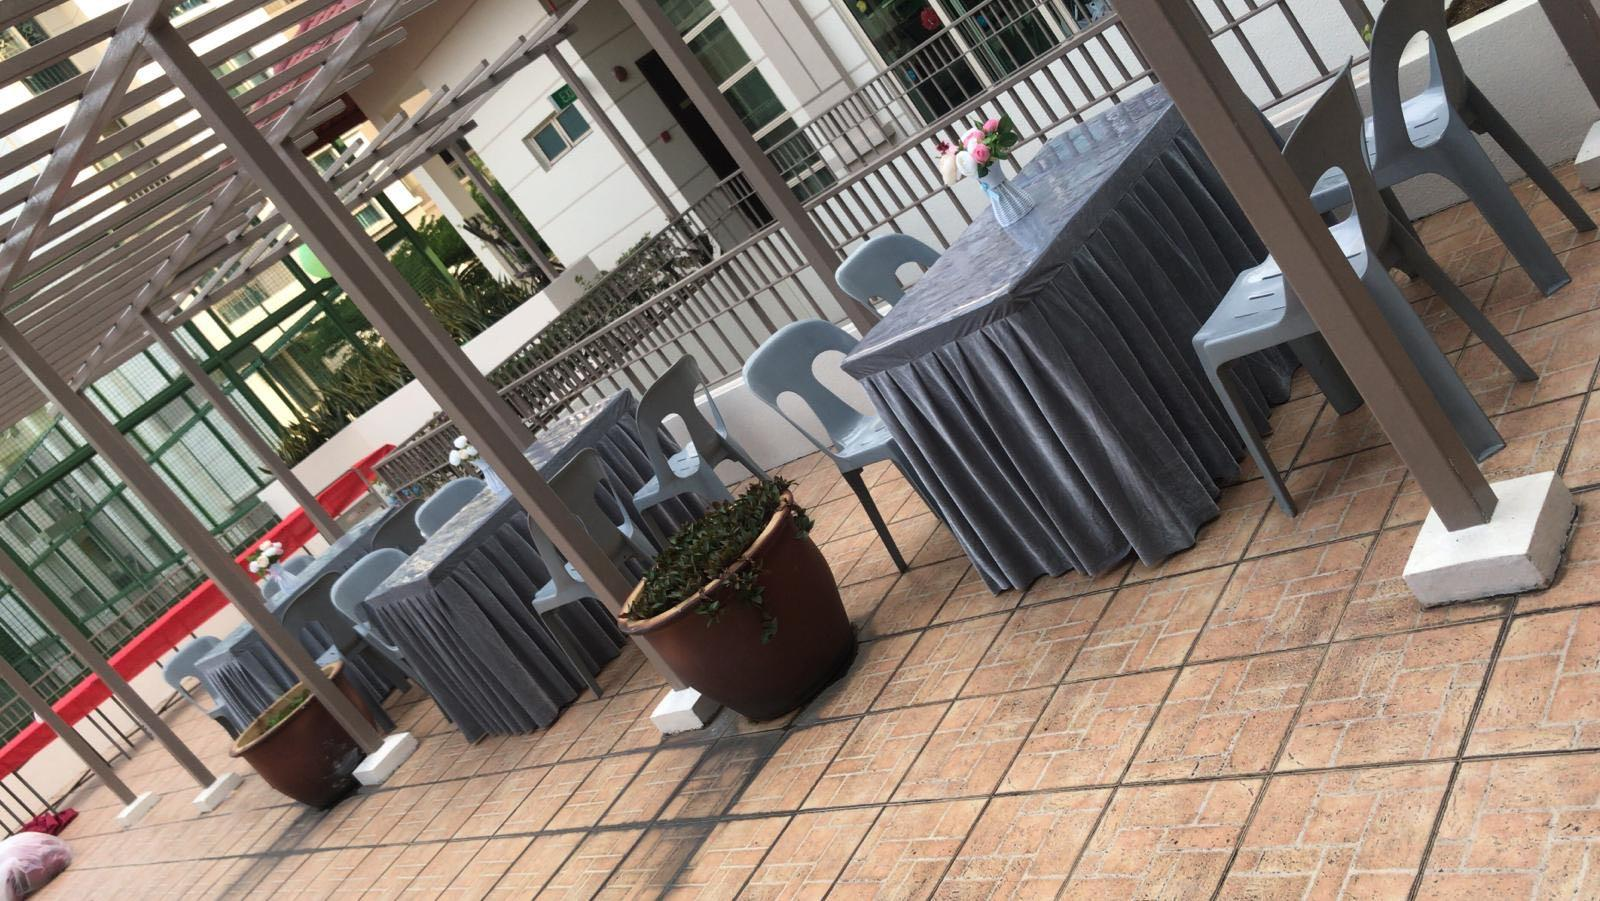 [Rent] Cheap Tables Chairs Stools Rental Deliver Setup Event Function Wedding Birthday Party Flee Market Roadshow Kenduri Buffet BBQ Barbecue Barbeque Open House Celebration Table Cloth Chair Cover Satin Polyester Rectangle Table Round Table Deco